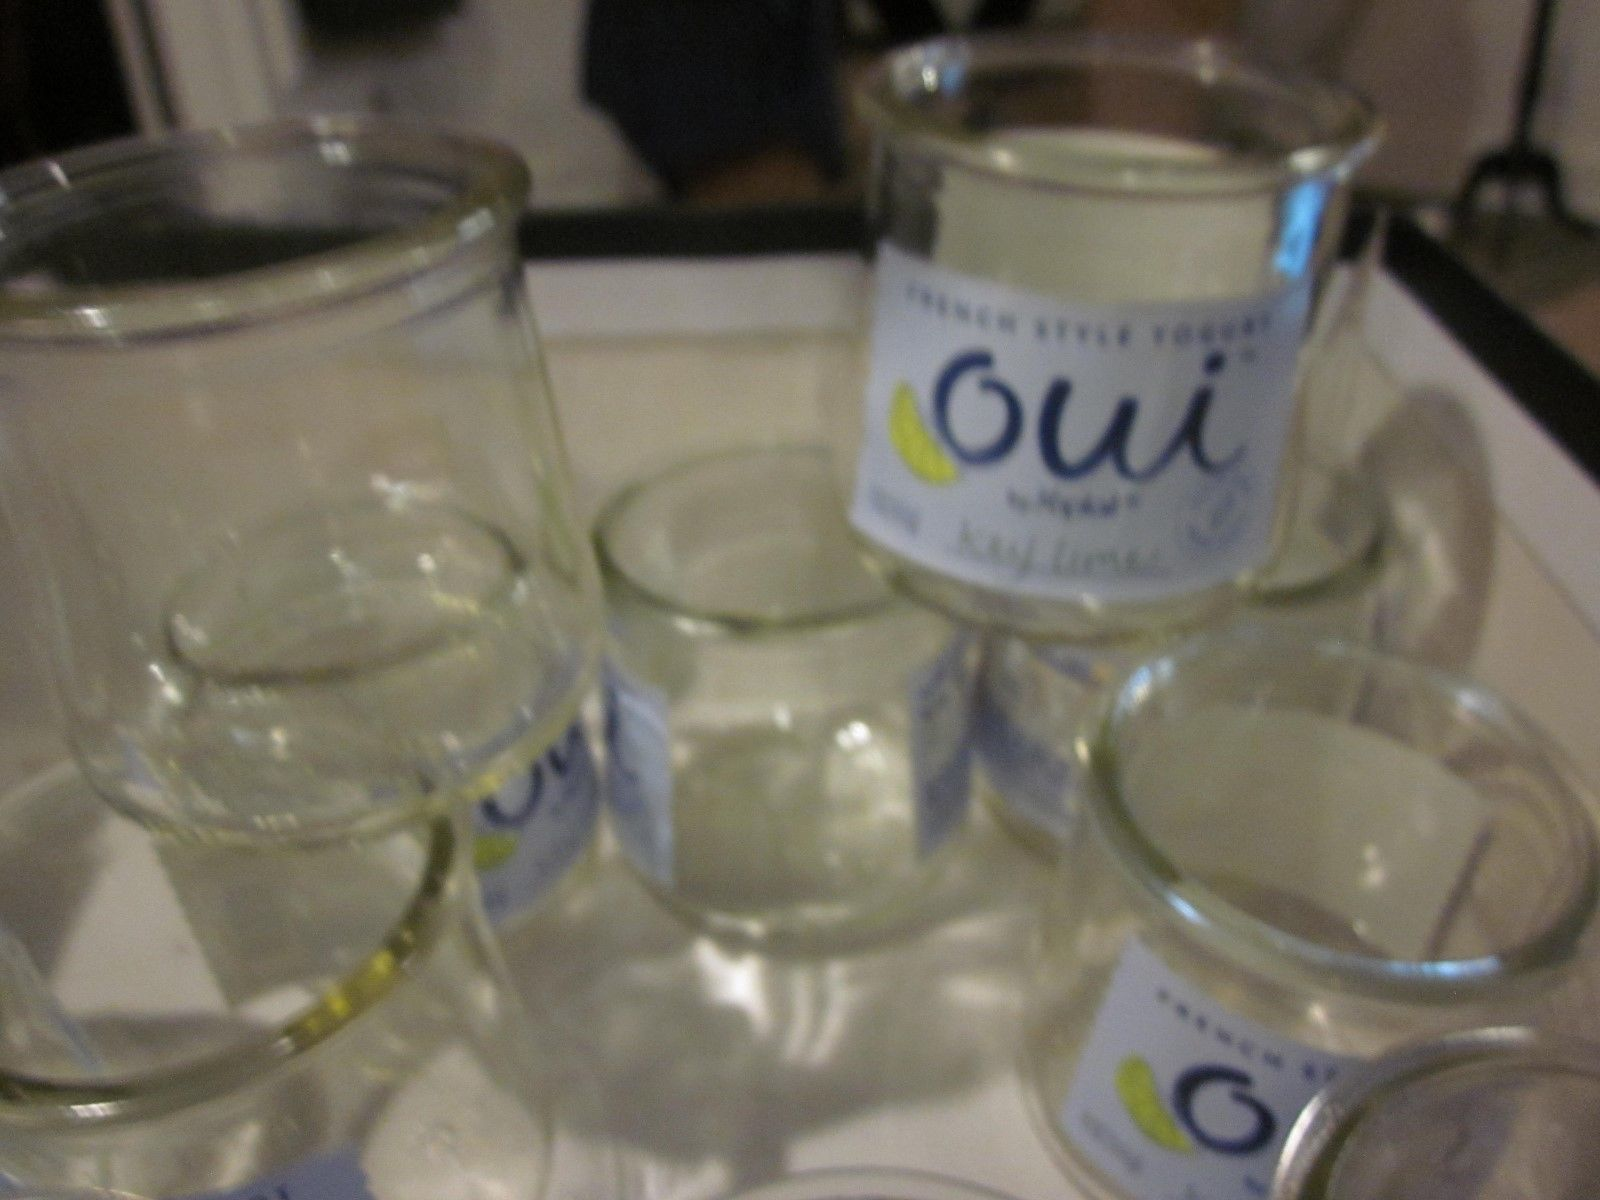 TWELVE 12 OUI EMPTY YOUGUT GLASS JARS GOOD FOR CRAFTS AND CANDLES